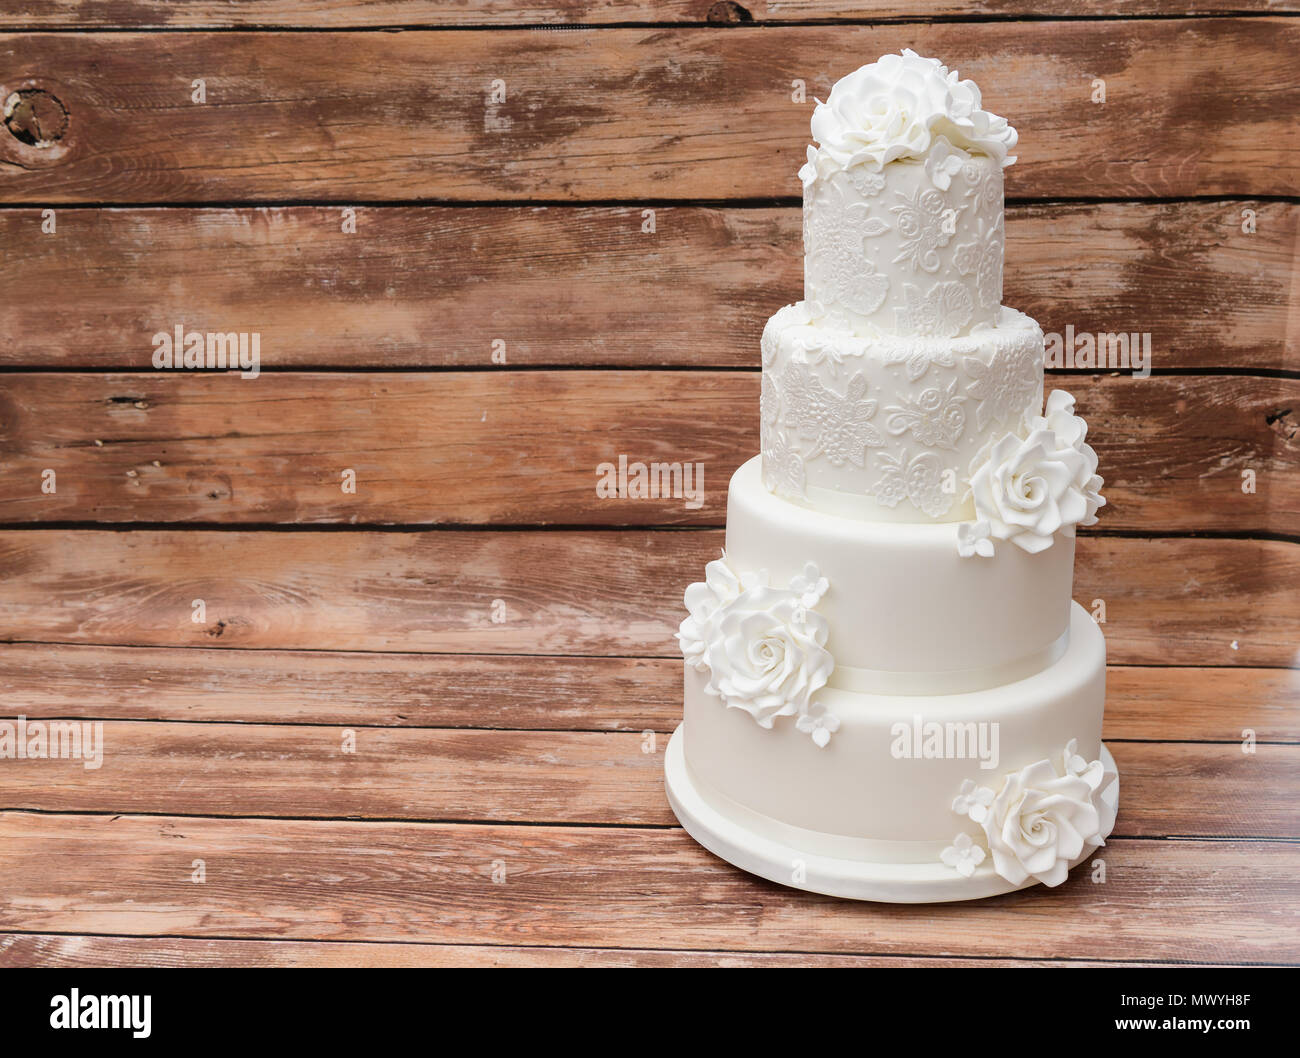 Four tier white wedding cake - Stock Image